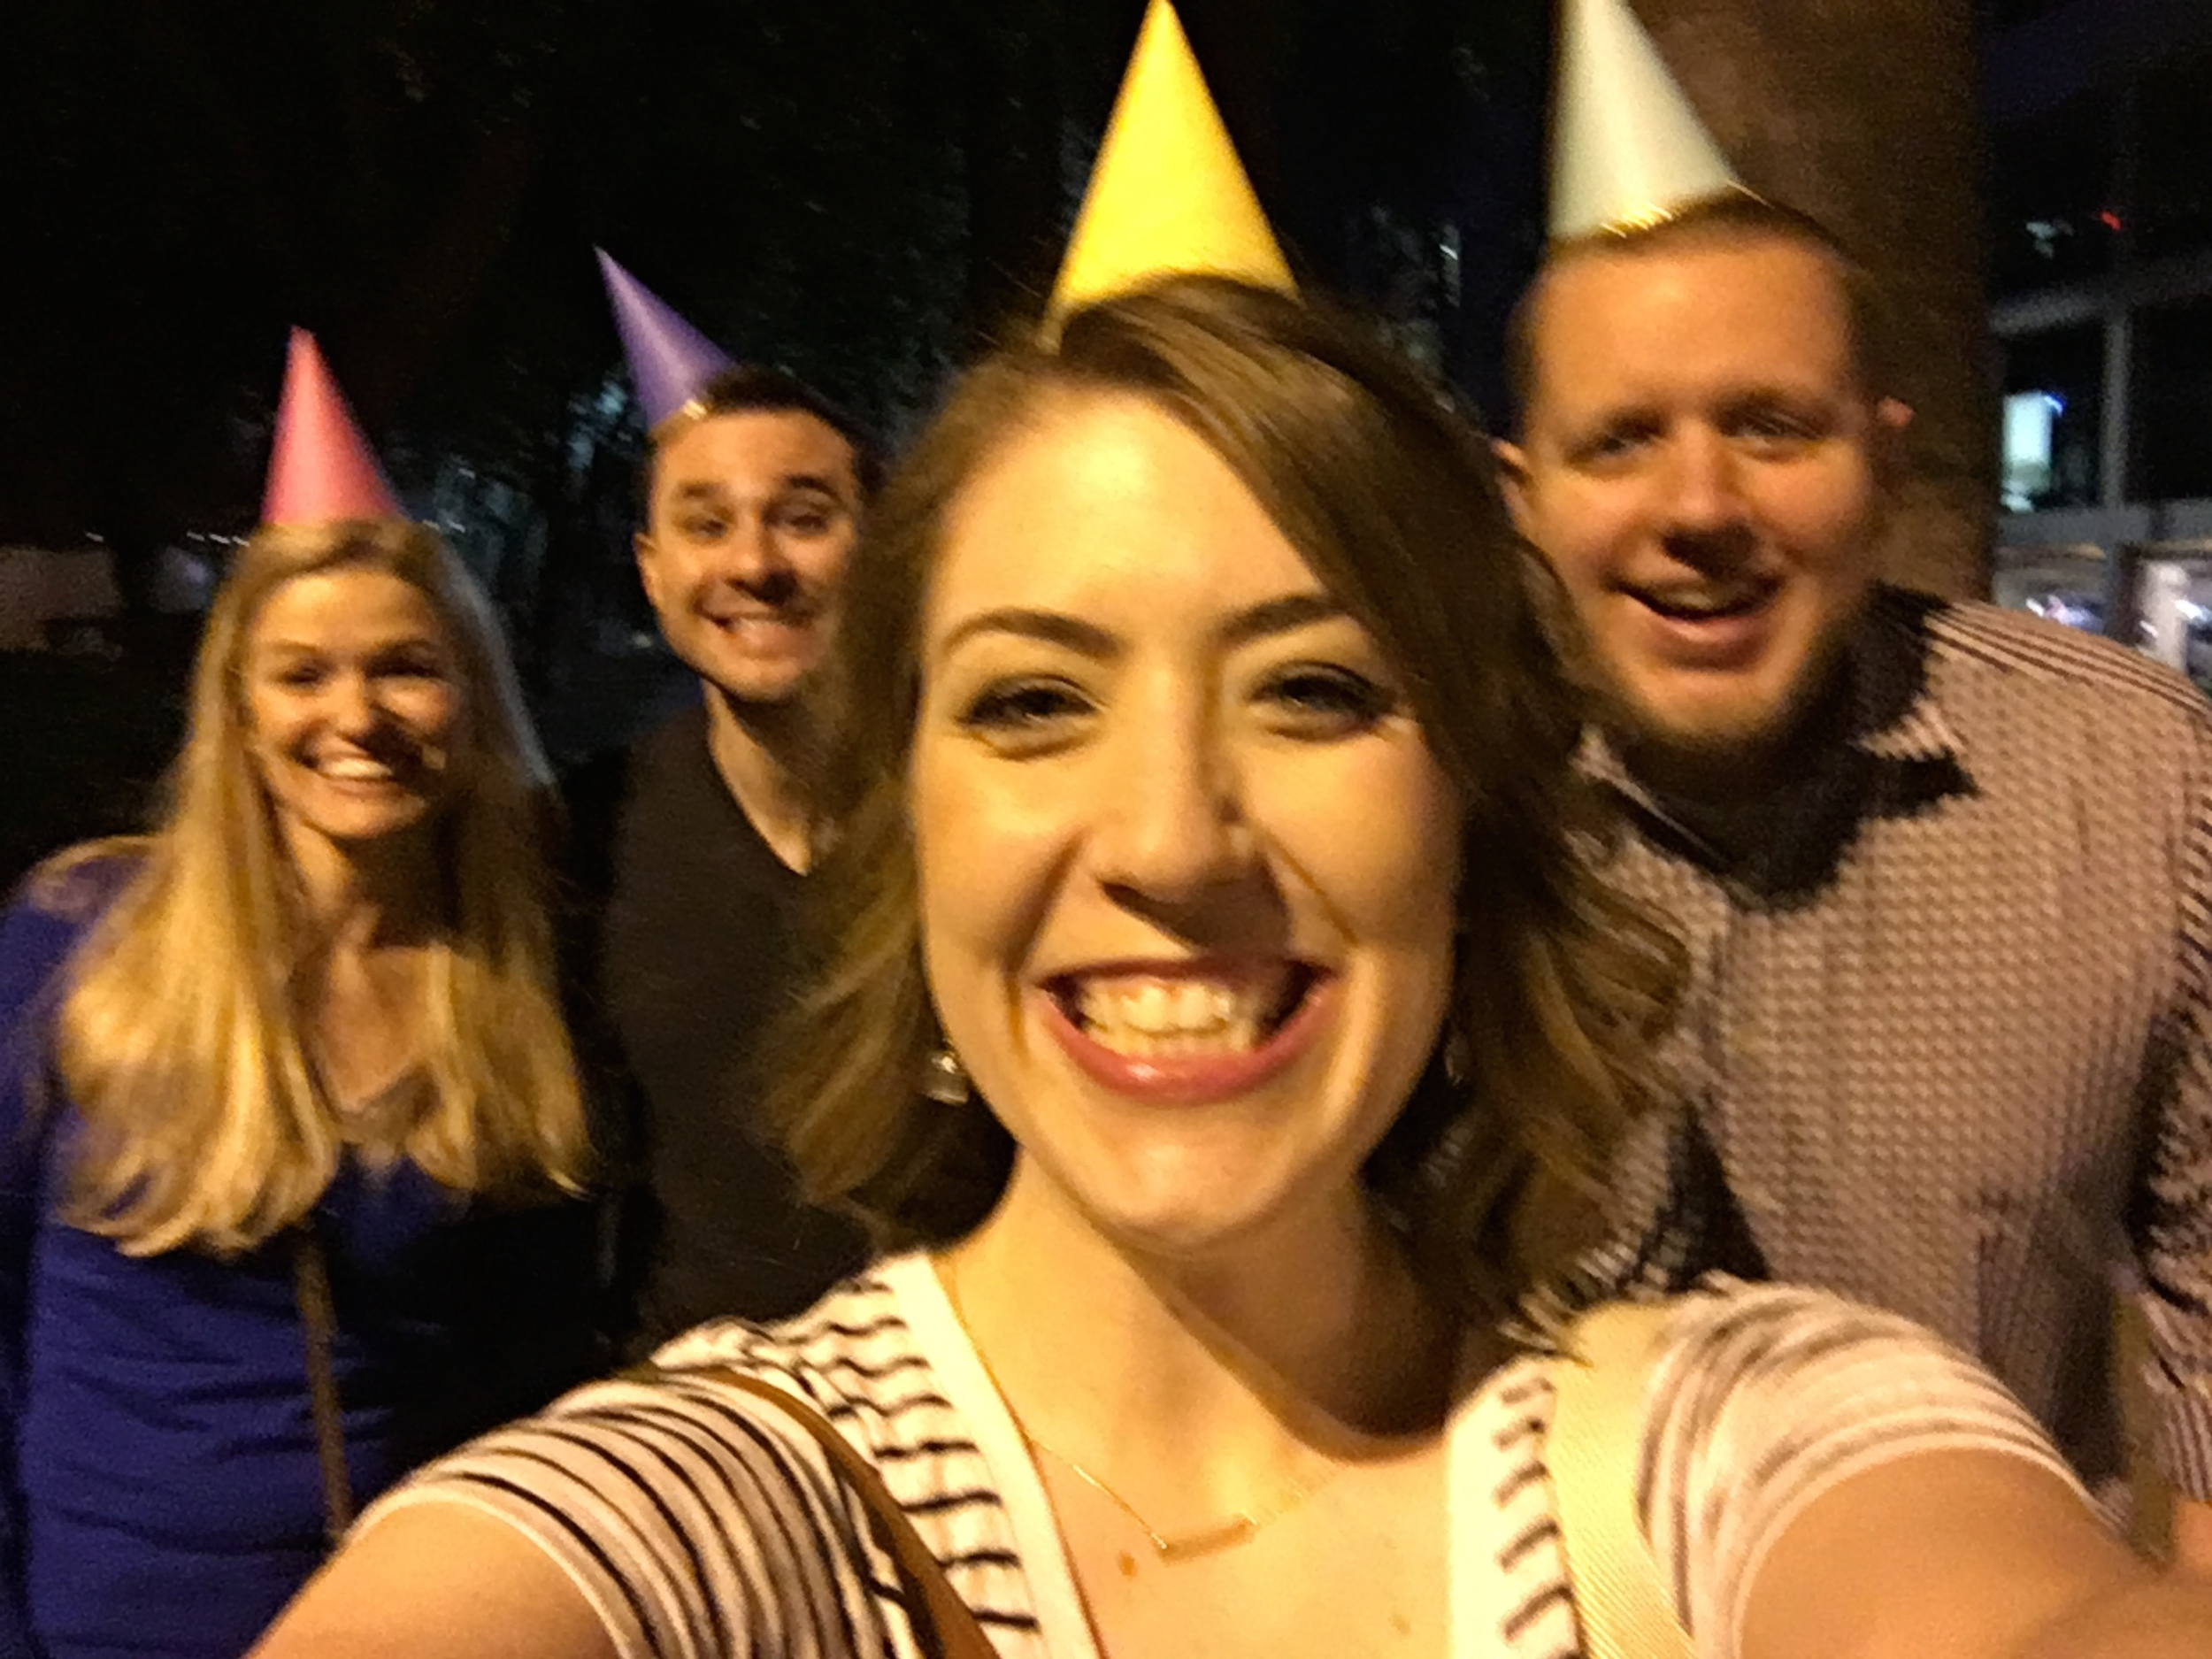 Party hats courtesy of Old Navy! Such a great find for $8/ 6 pack.